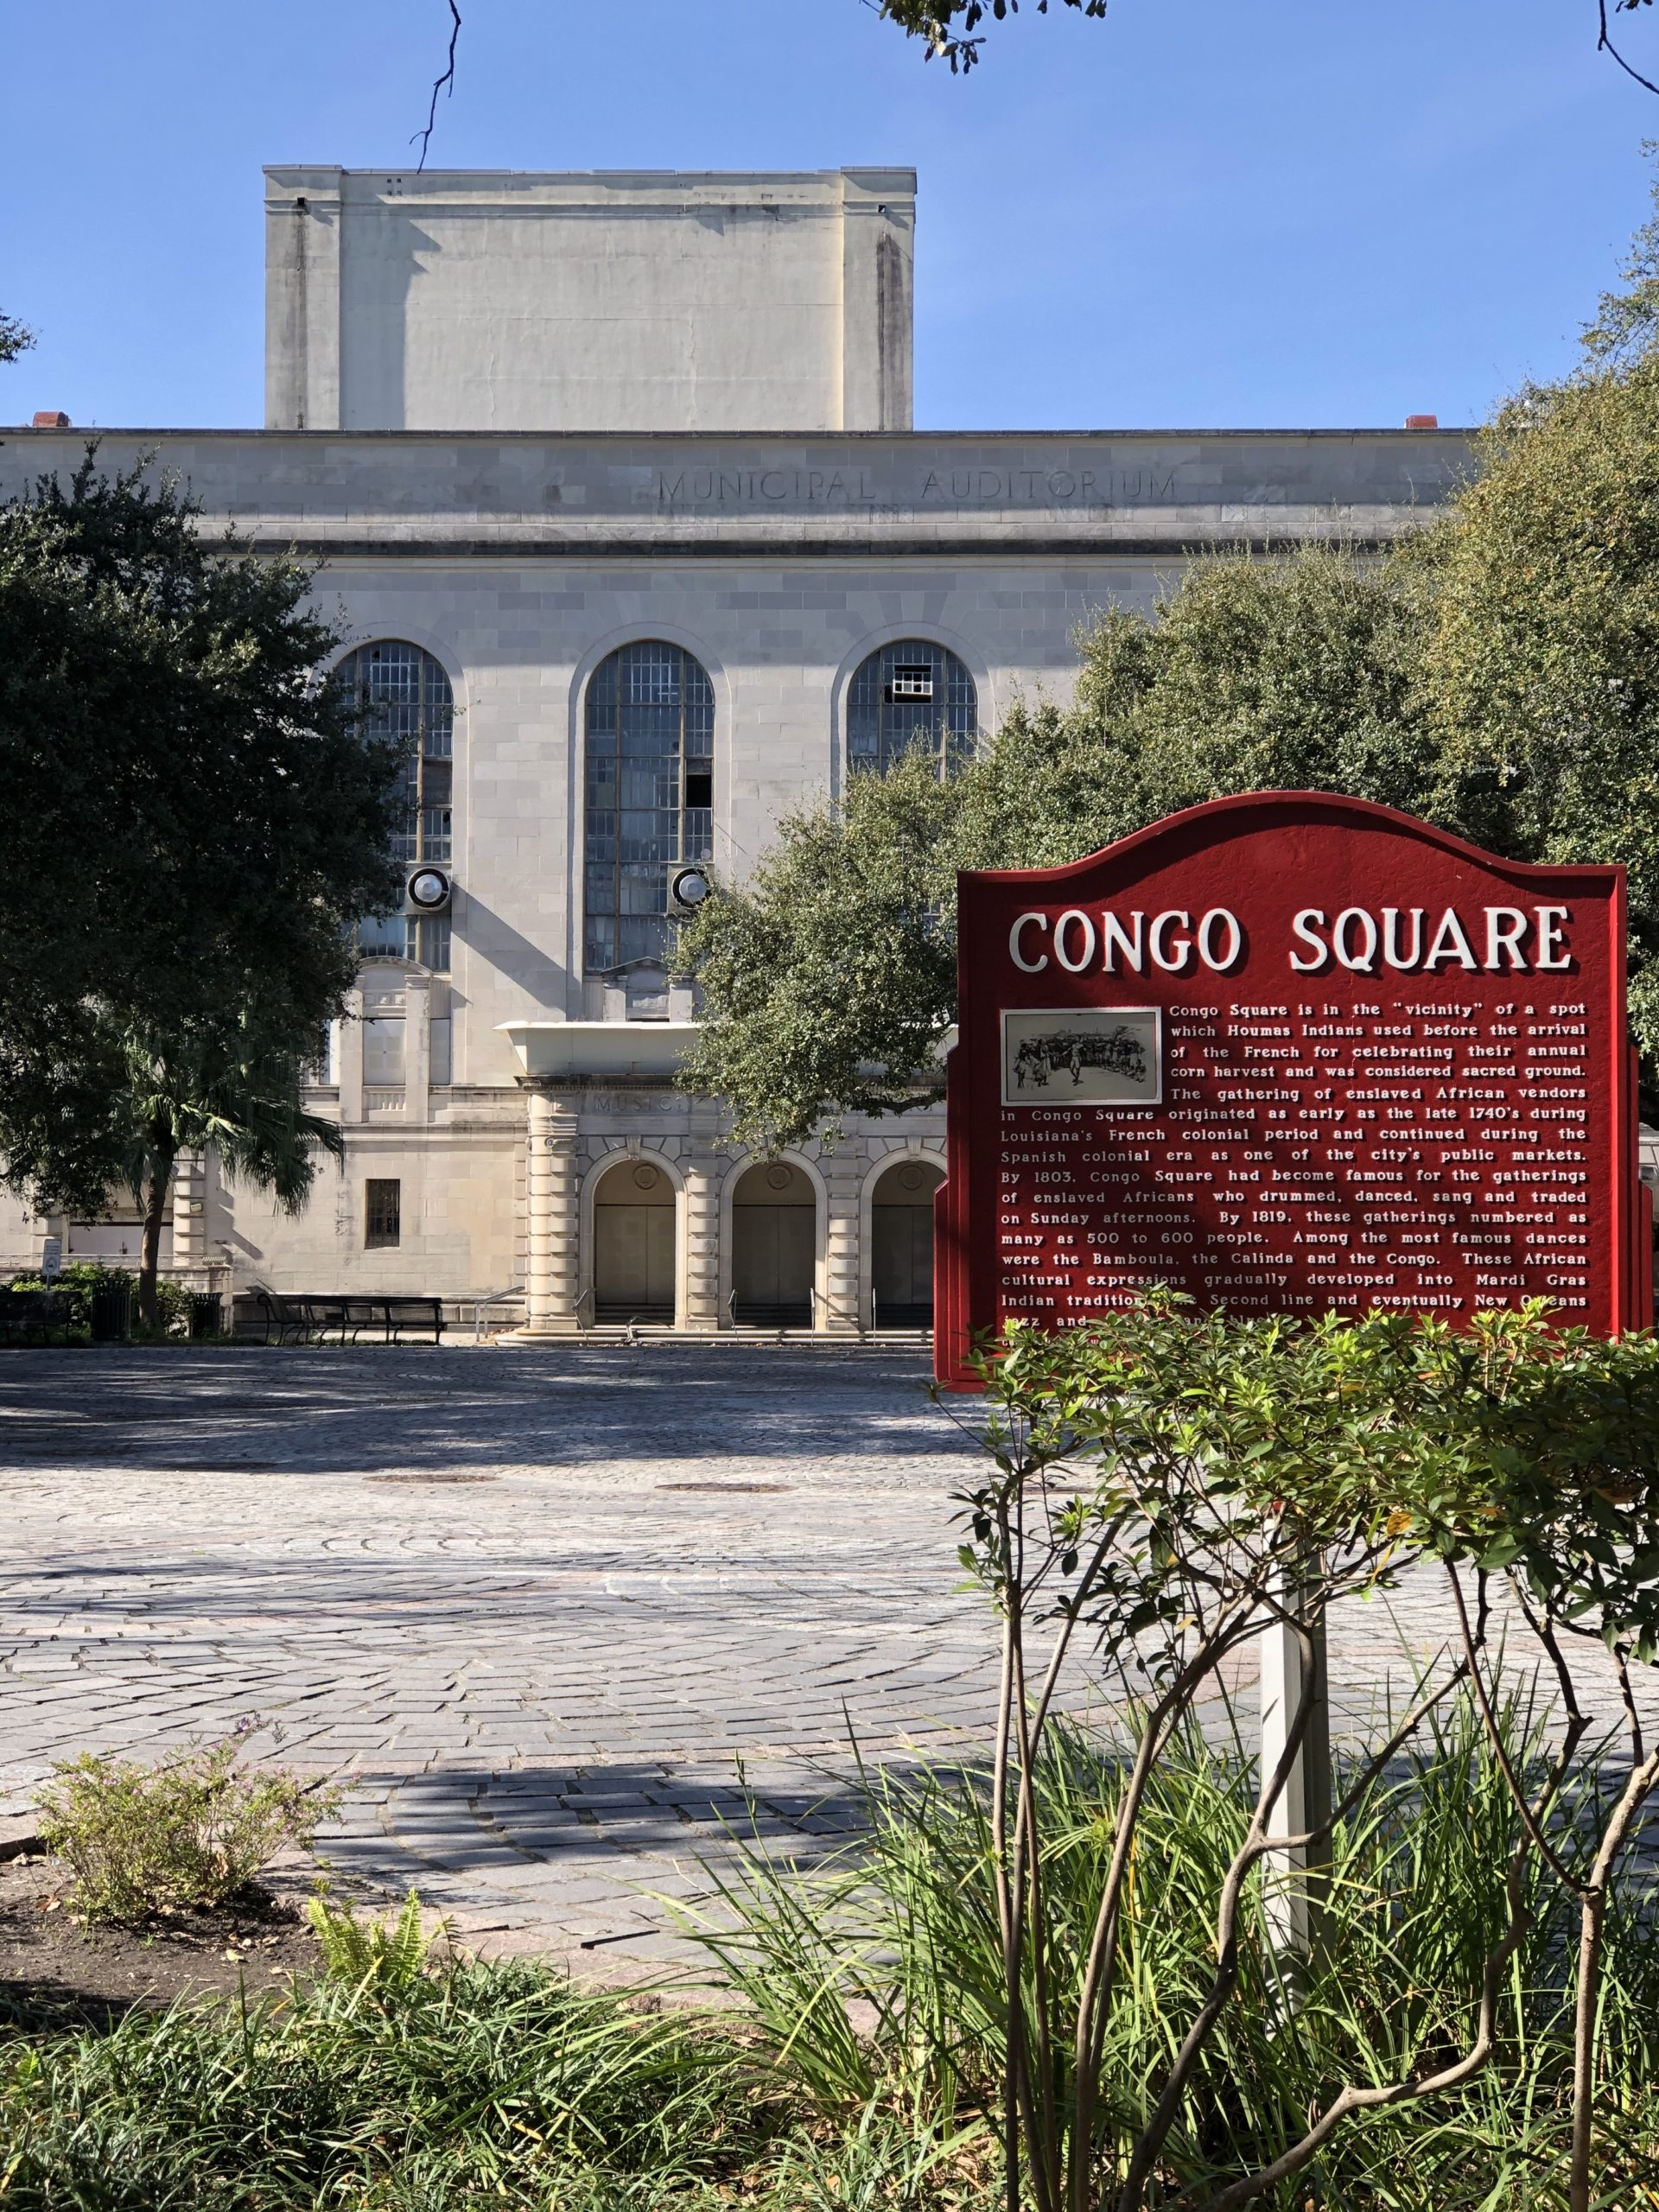 A picture of Congo Square in February 2020